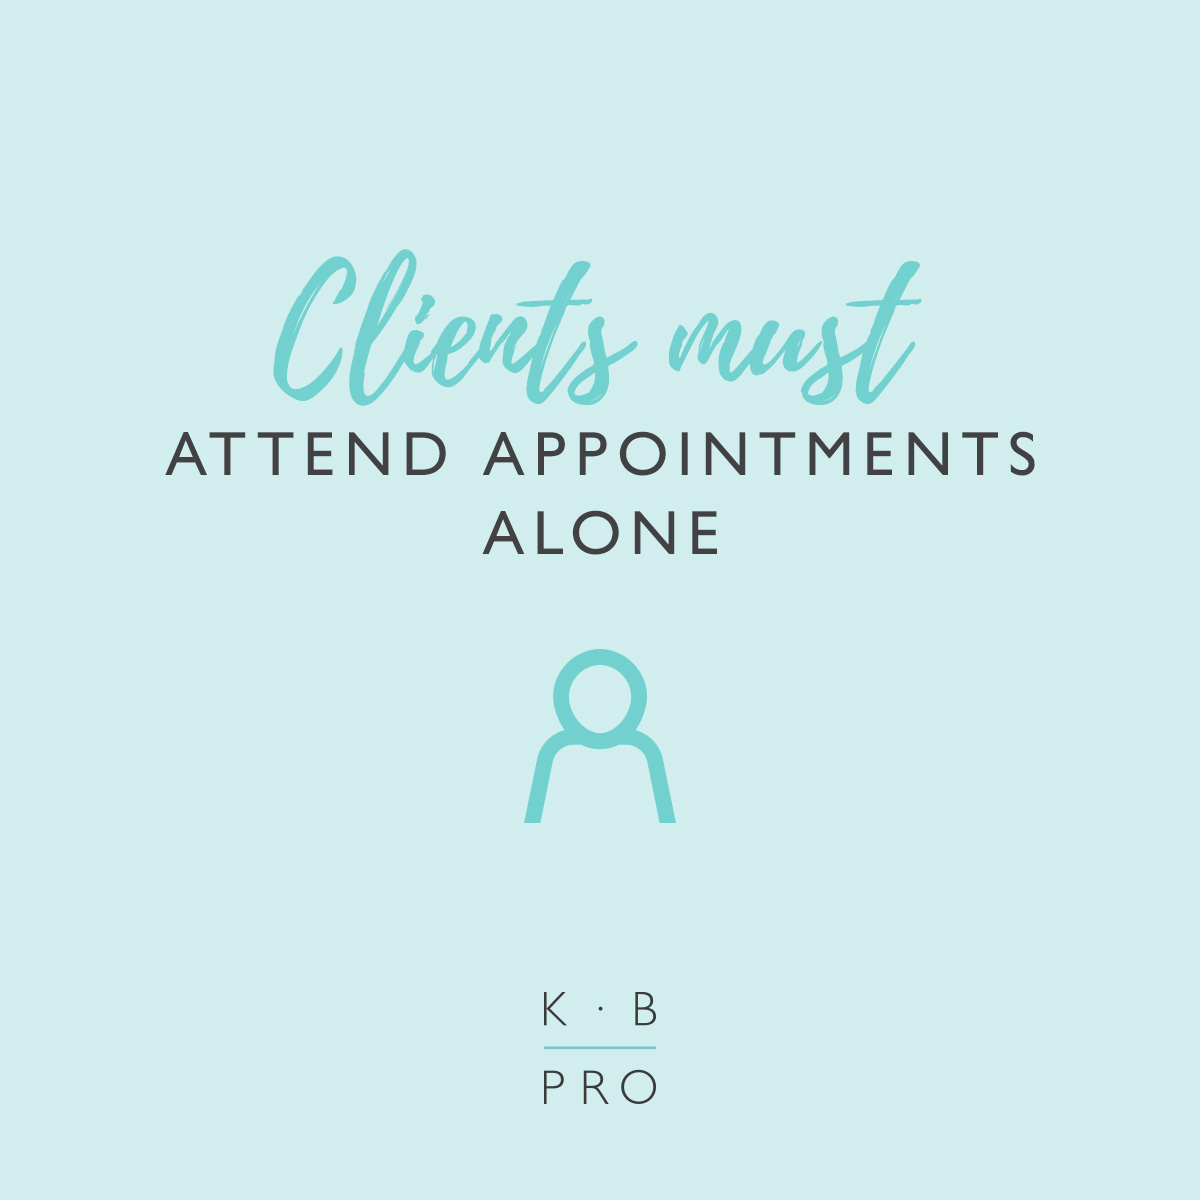 Clients must attend appointments